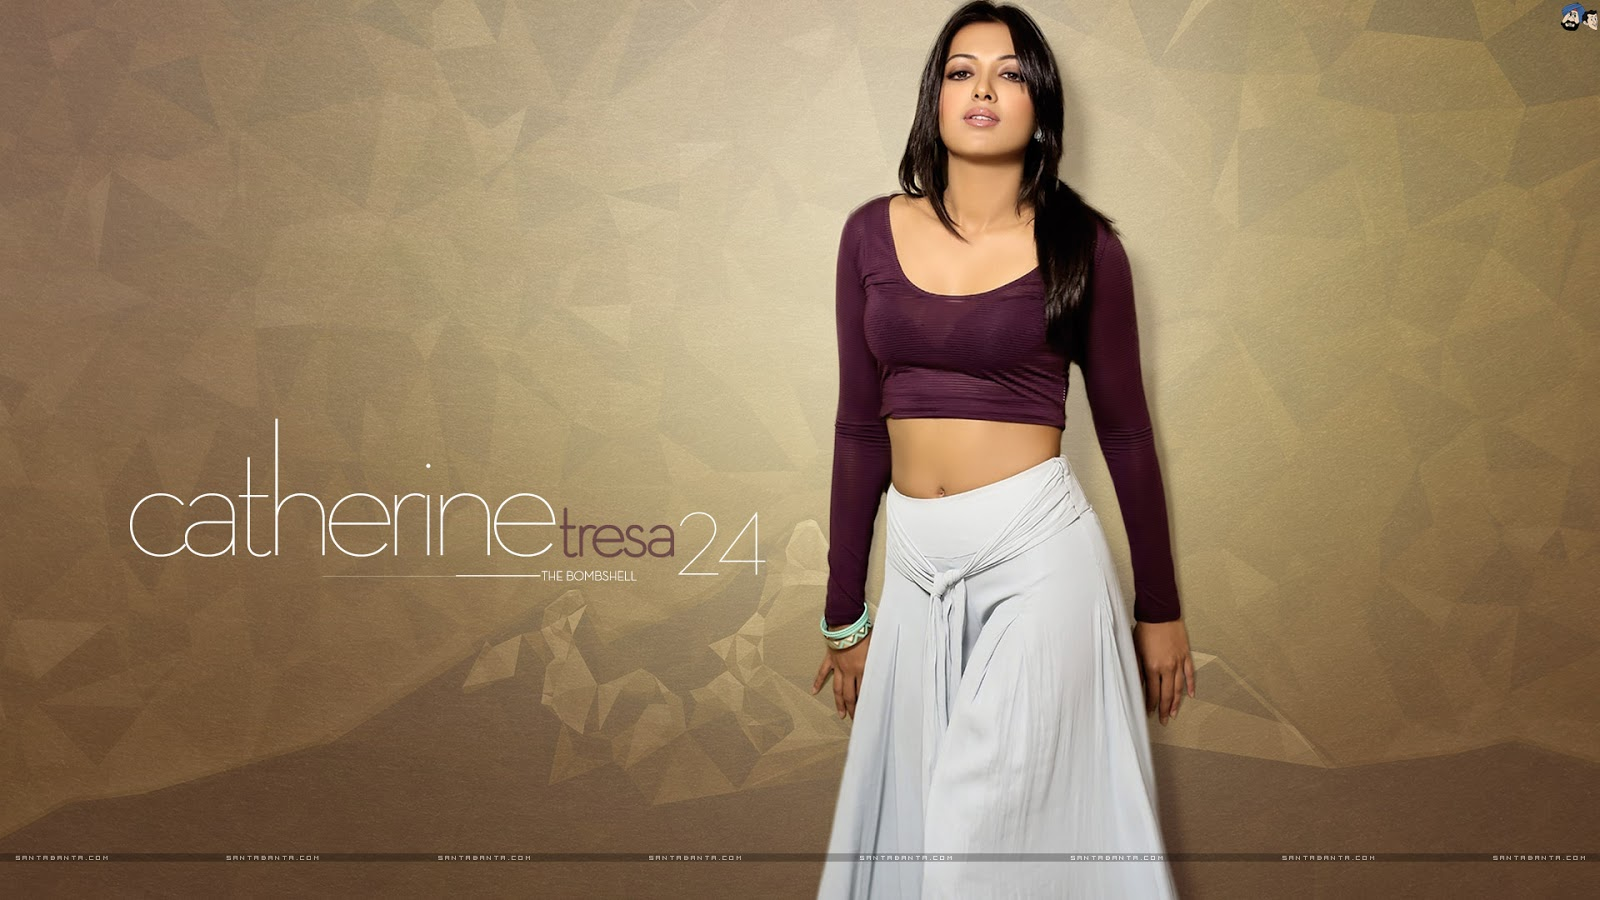 Catherine Tresa Girls Hidia Wallpaper